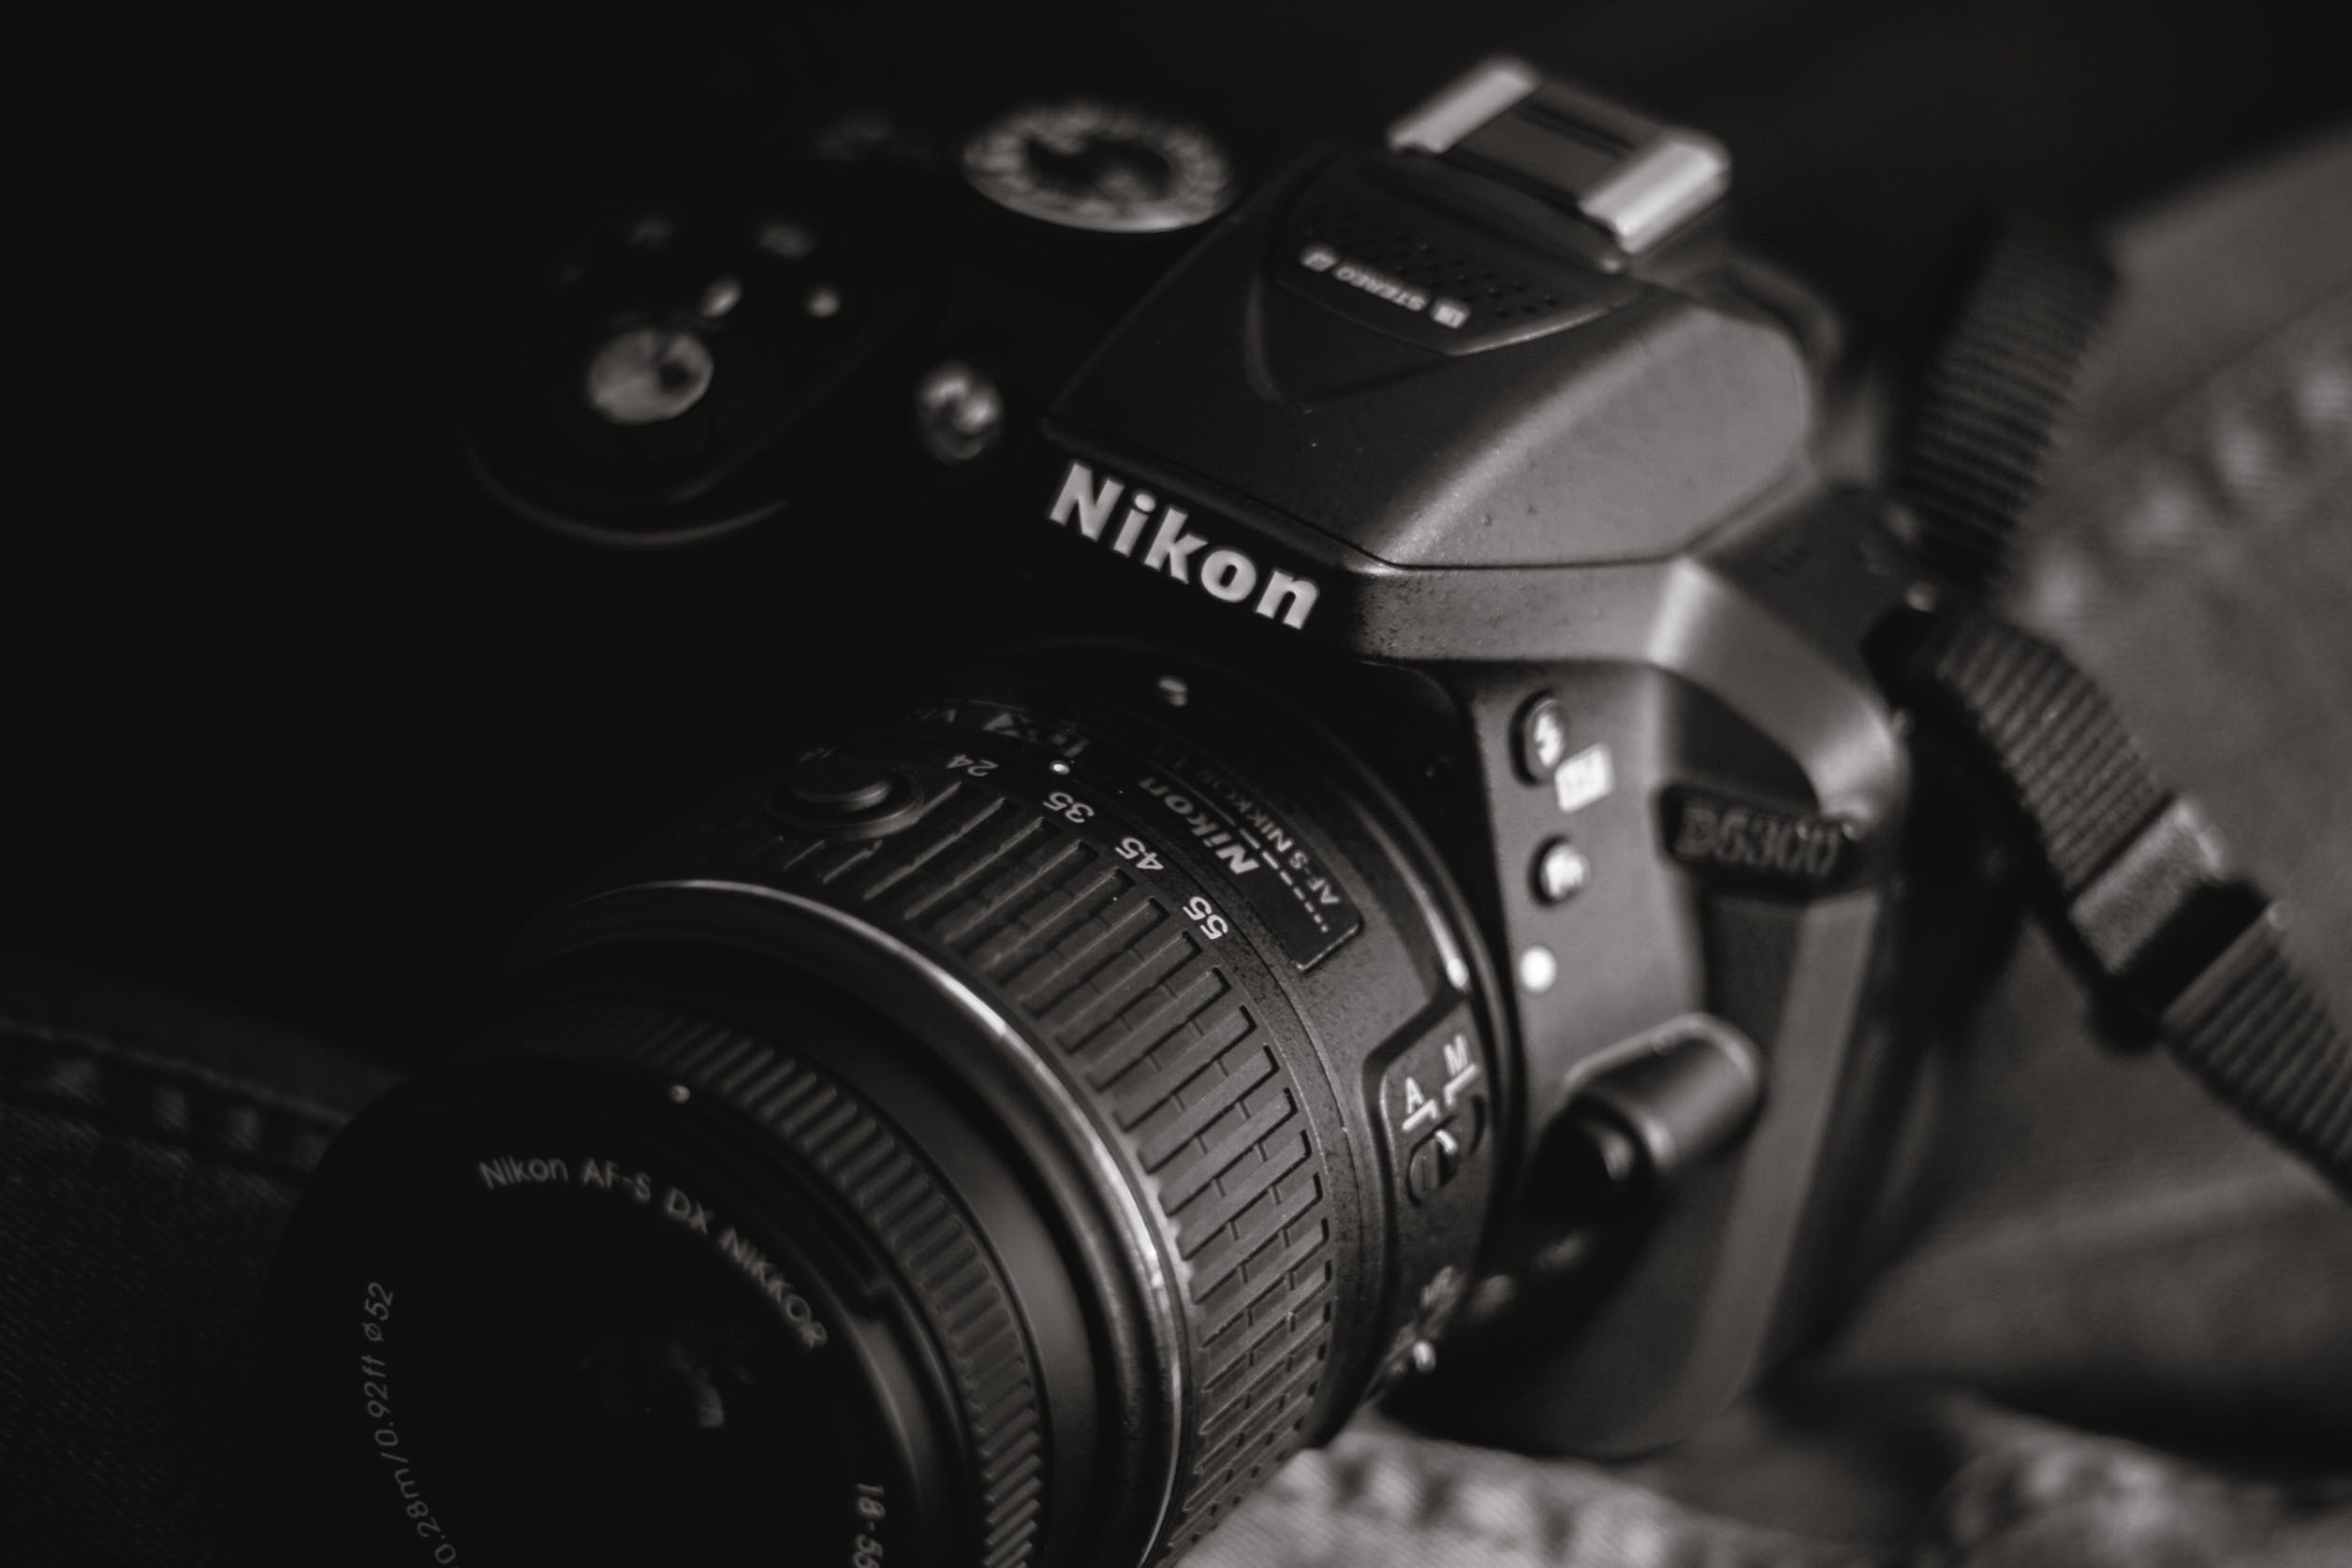 Nikon D5300 in Grayscale Photography